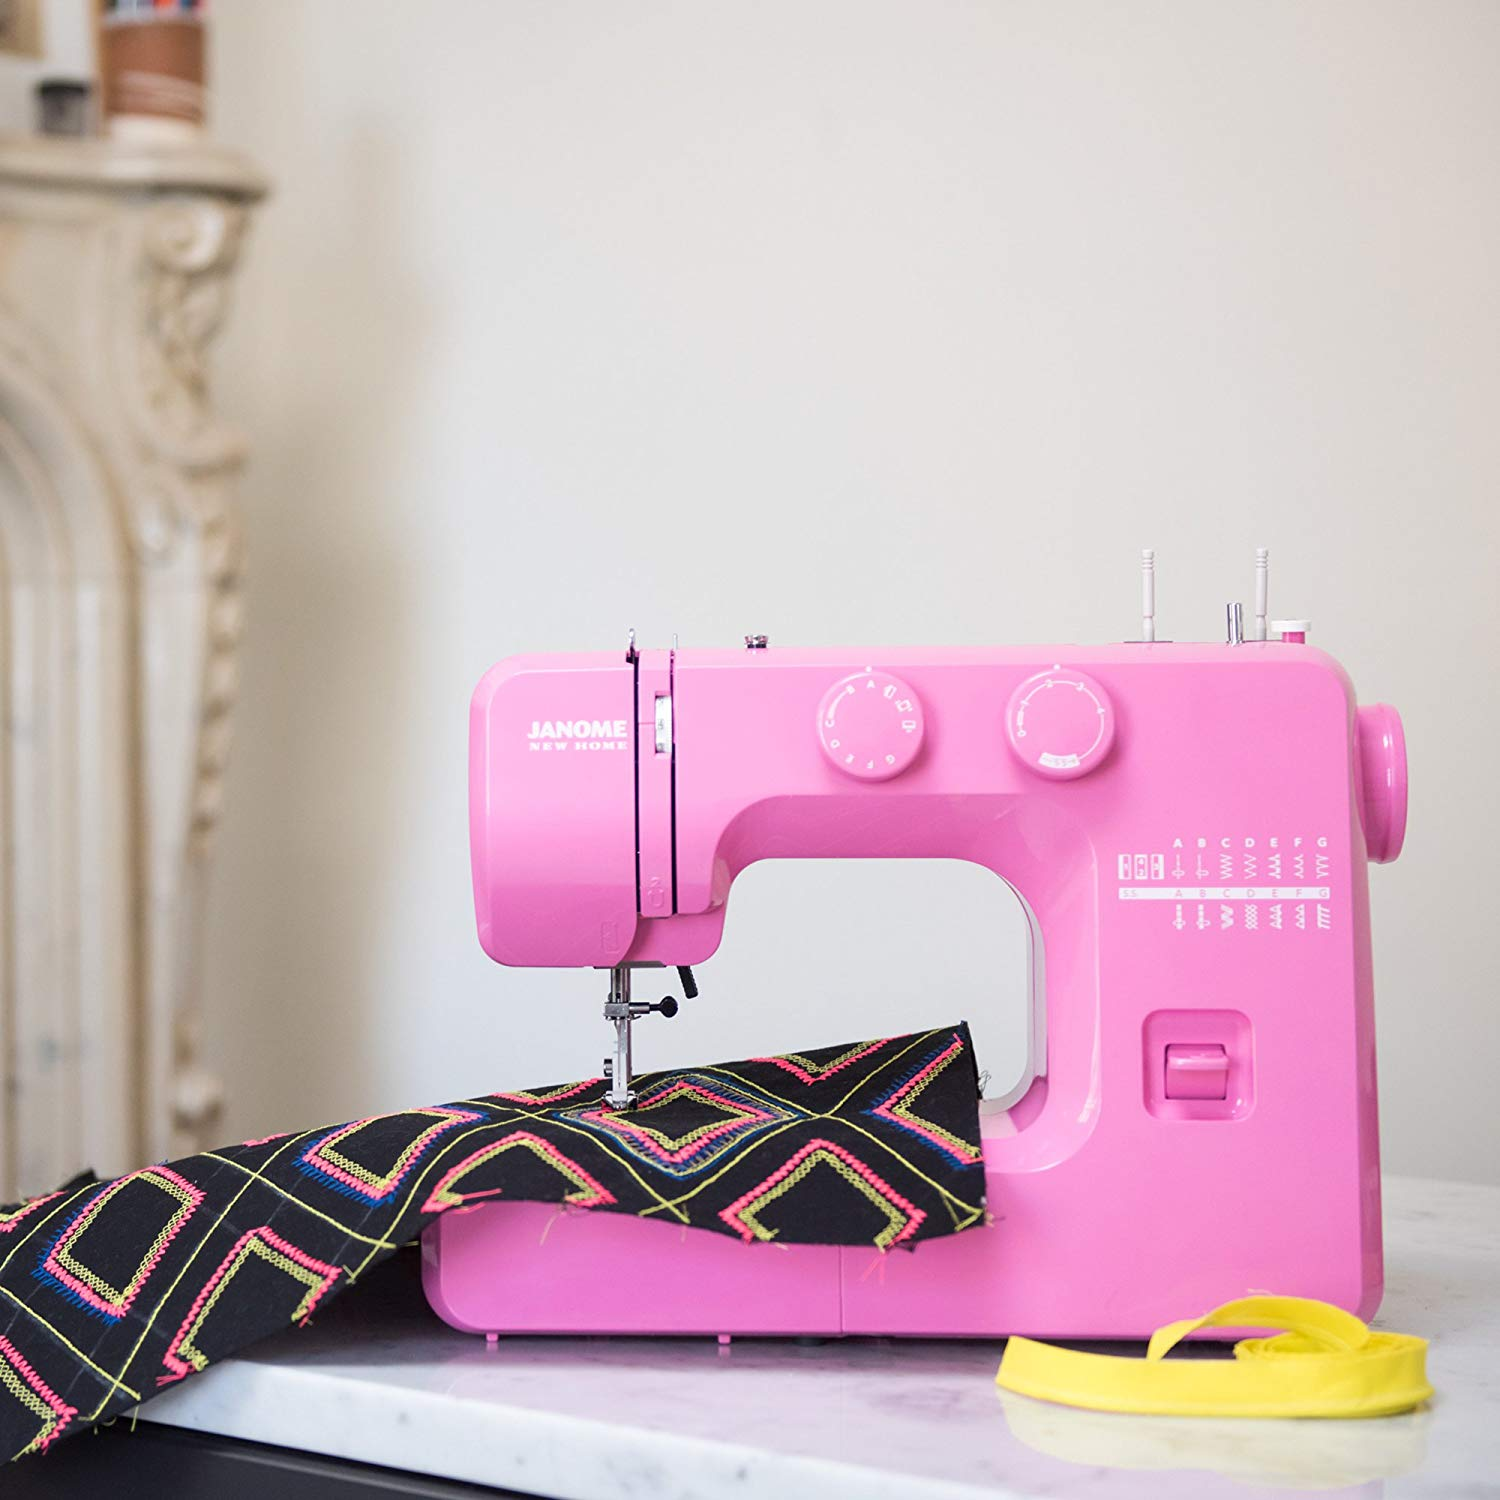 janome sewing machine for kids